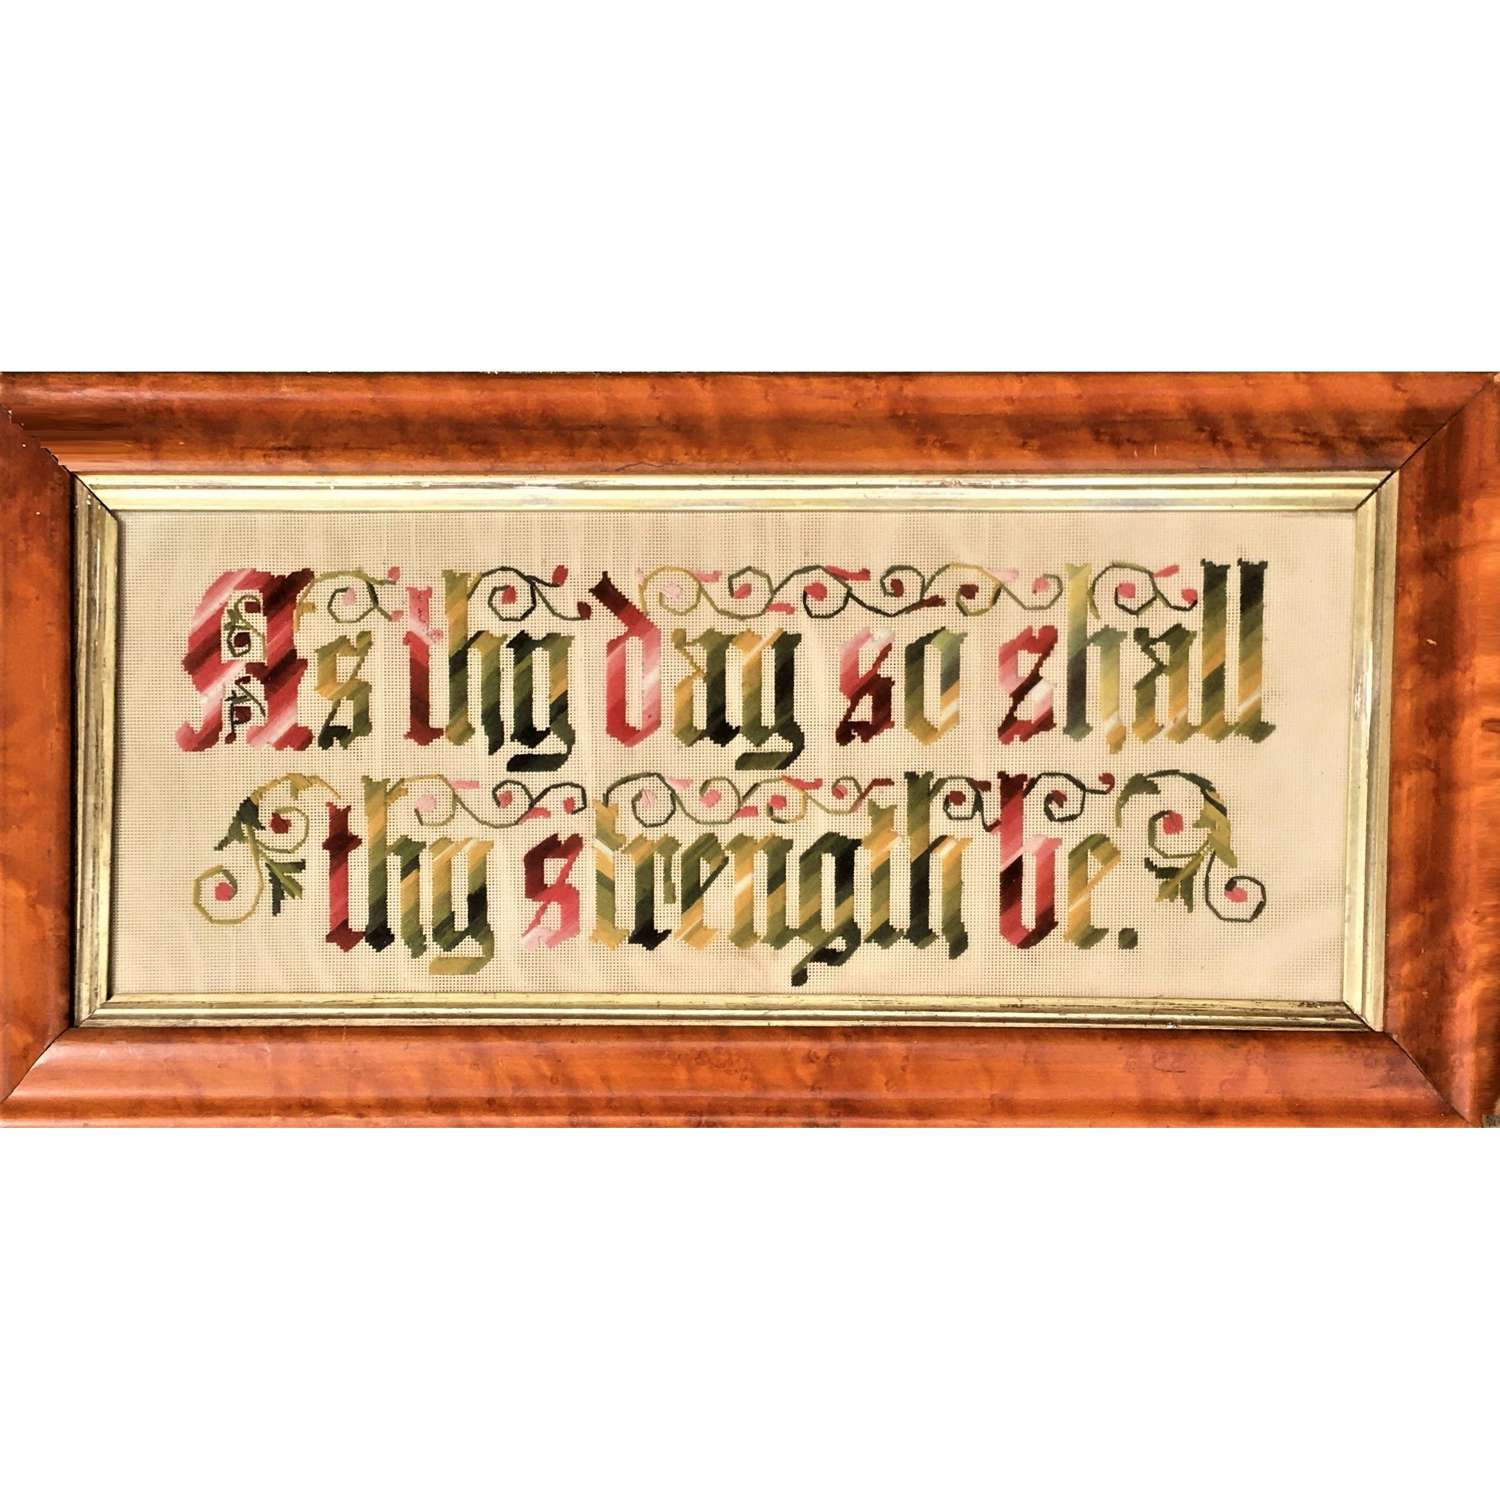 Antique Victorian perforated paper or punched paper embroidery motto